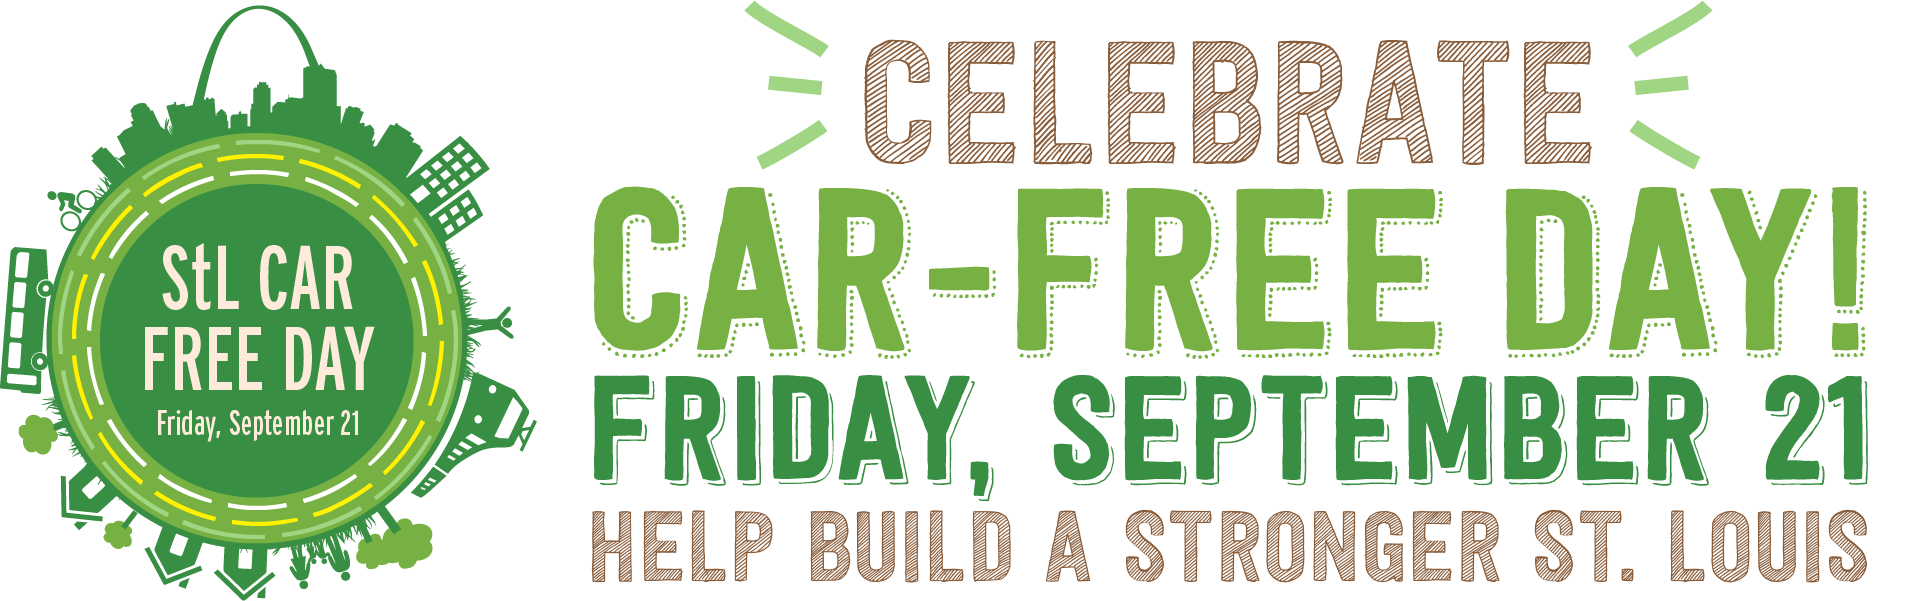 Celebrate Car-Free Day! Friday, September 21. Help Build a Stronger St. Louis.